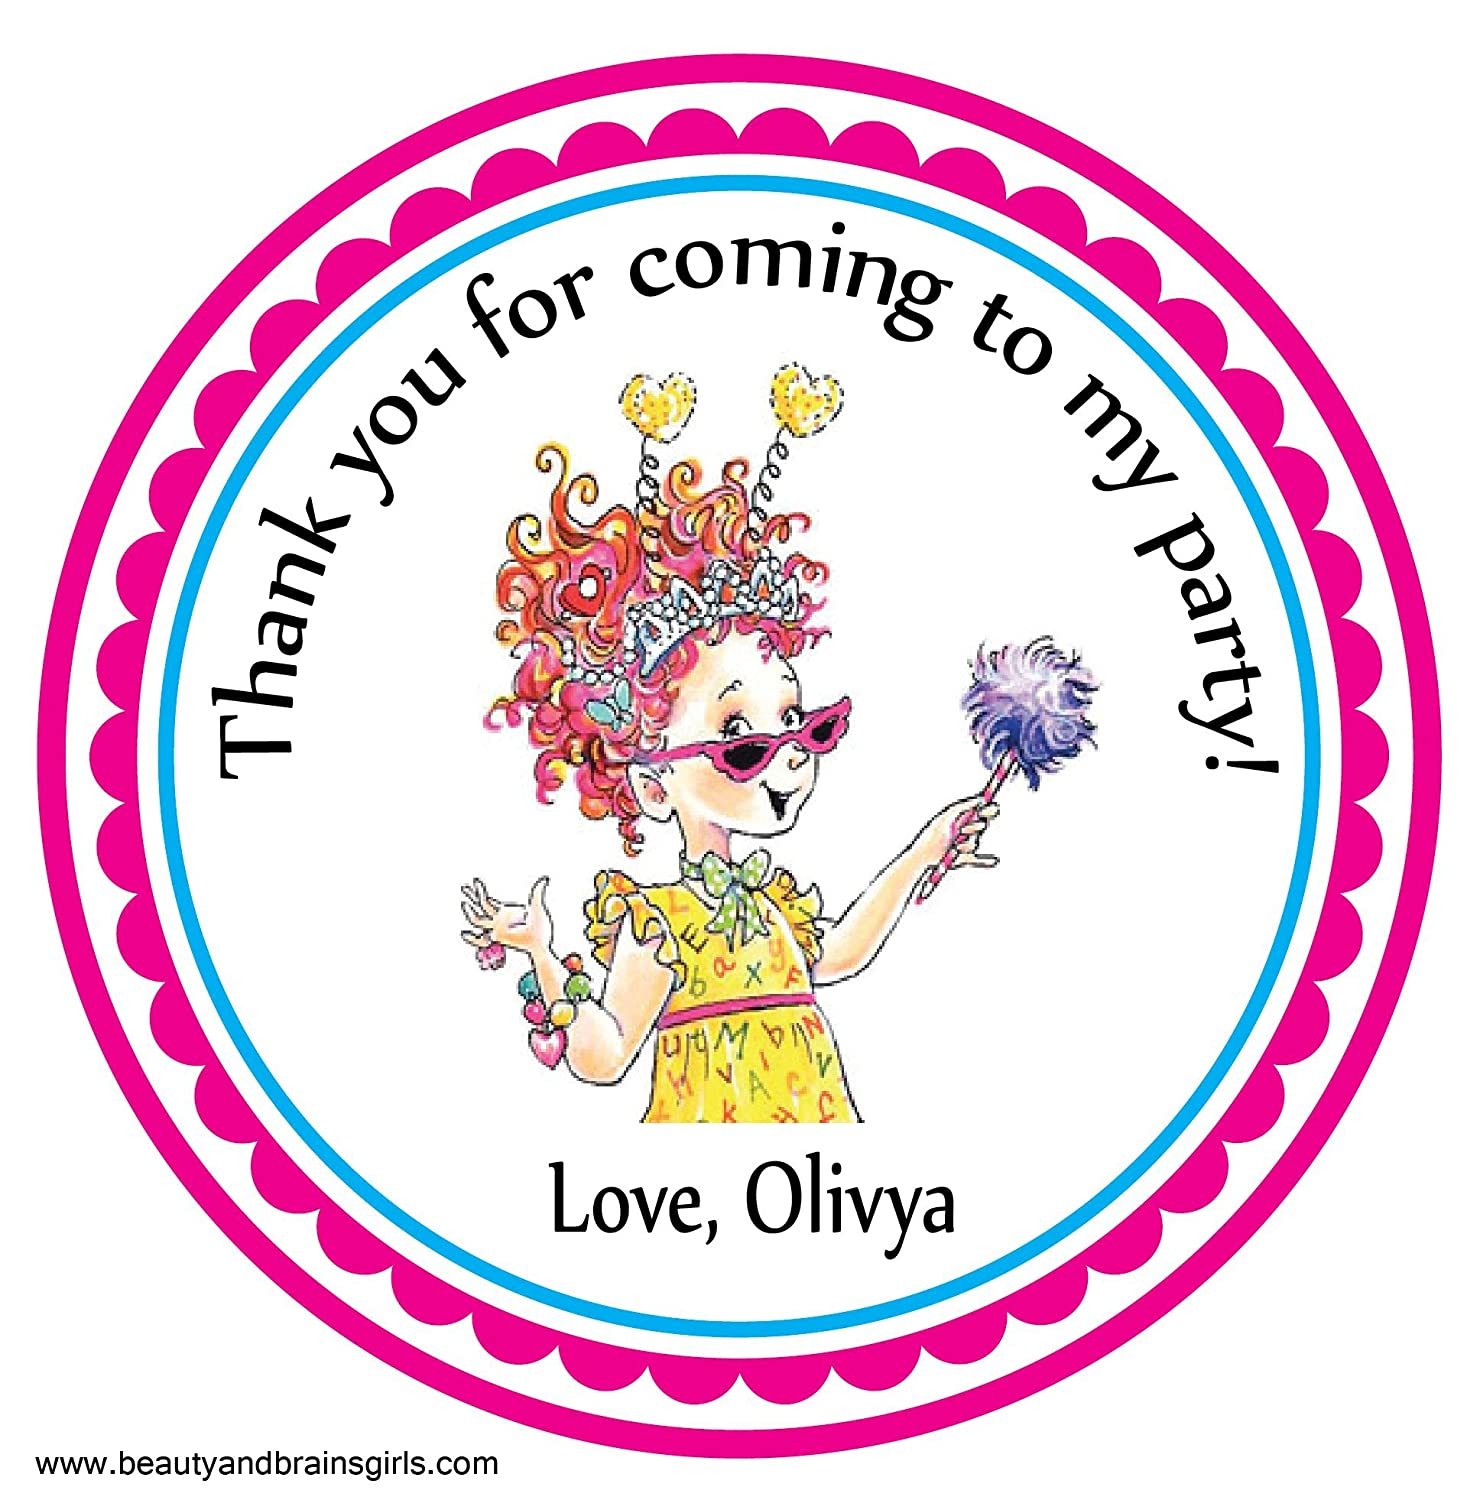 Amazon com fancy nancy custom personalized stickers birthday party favor treat tag toppers 24 stickers popular size 2 5 inches peel and stick backing